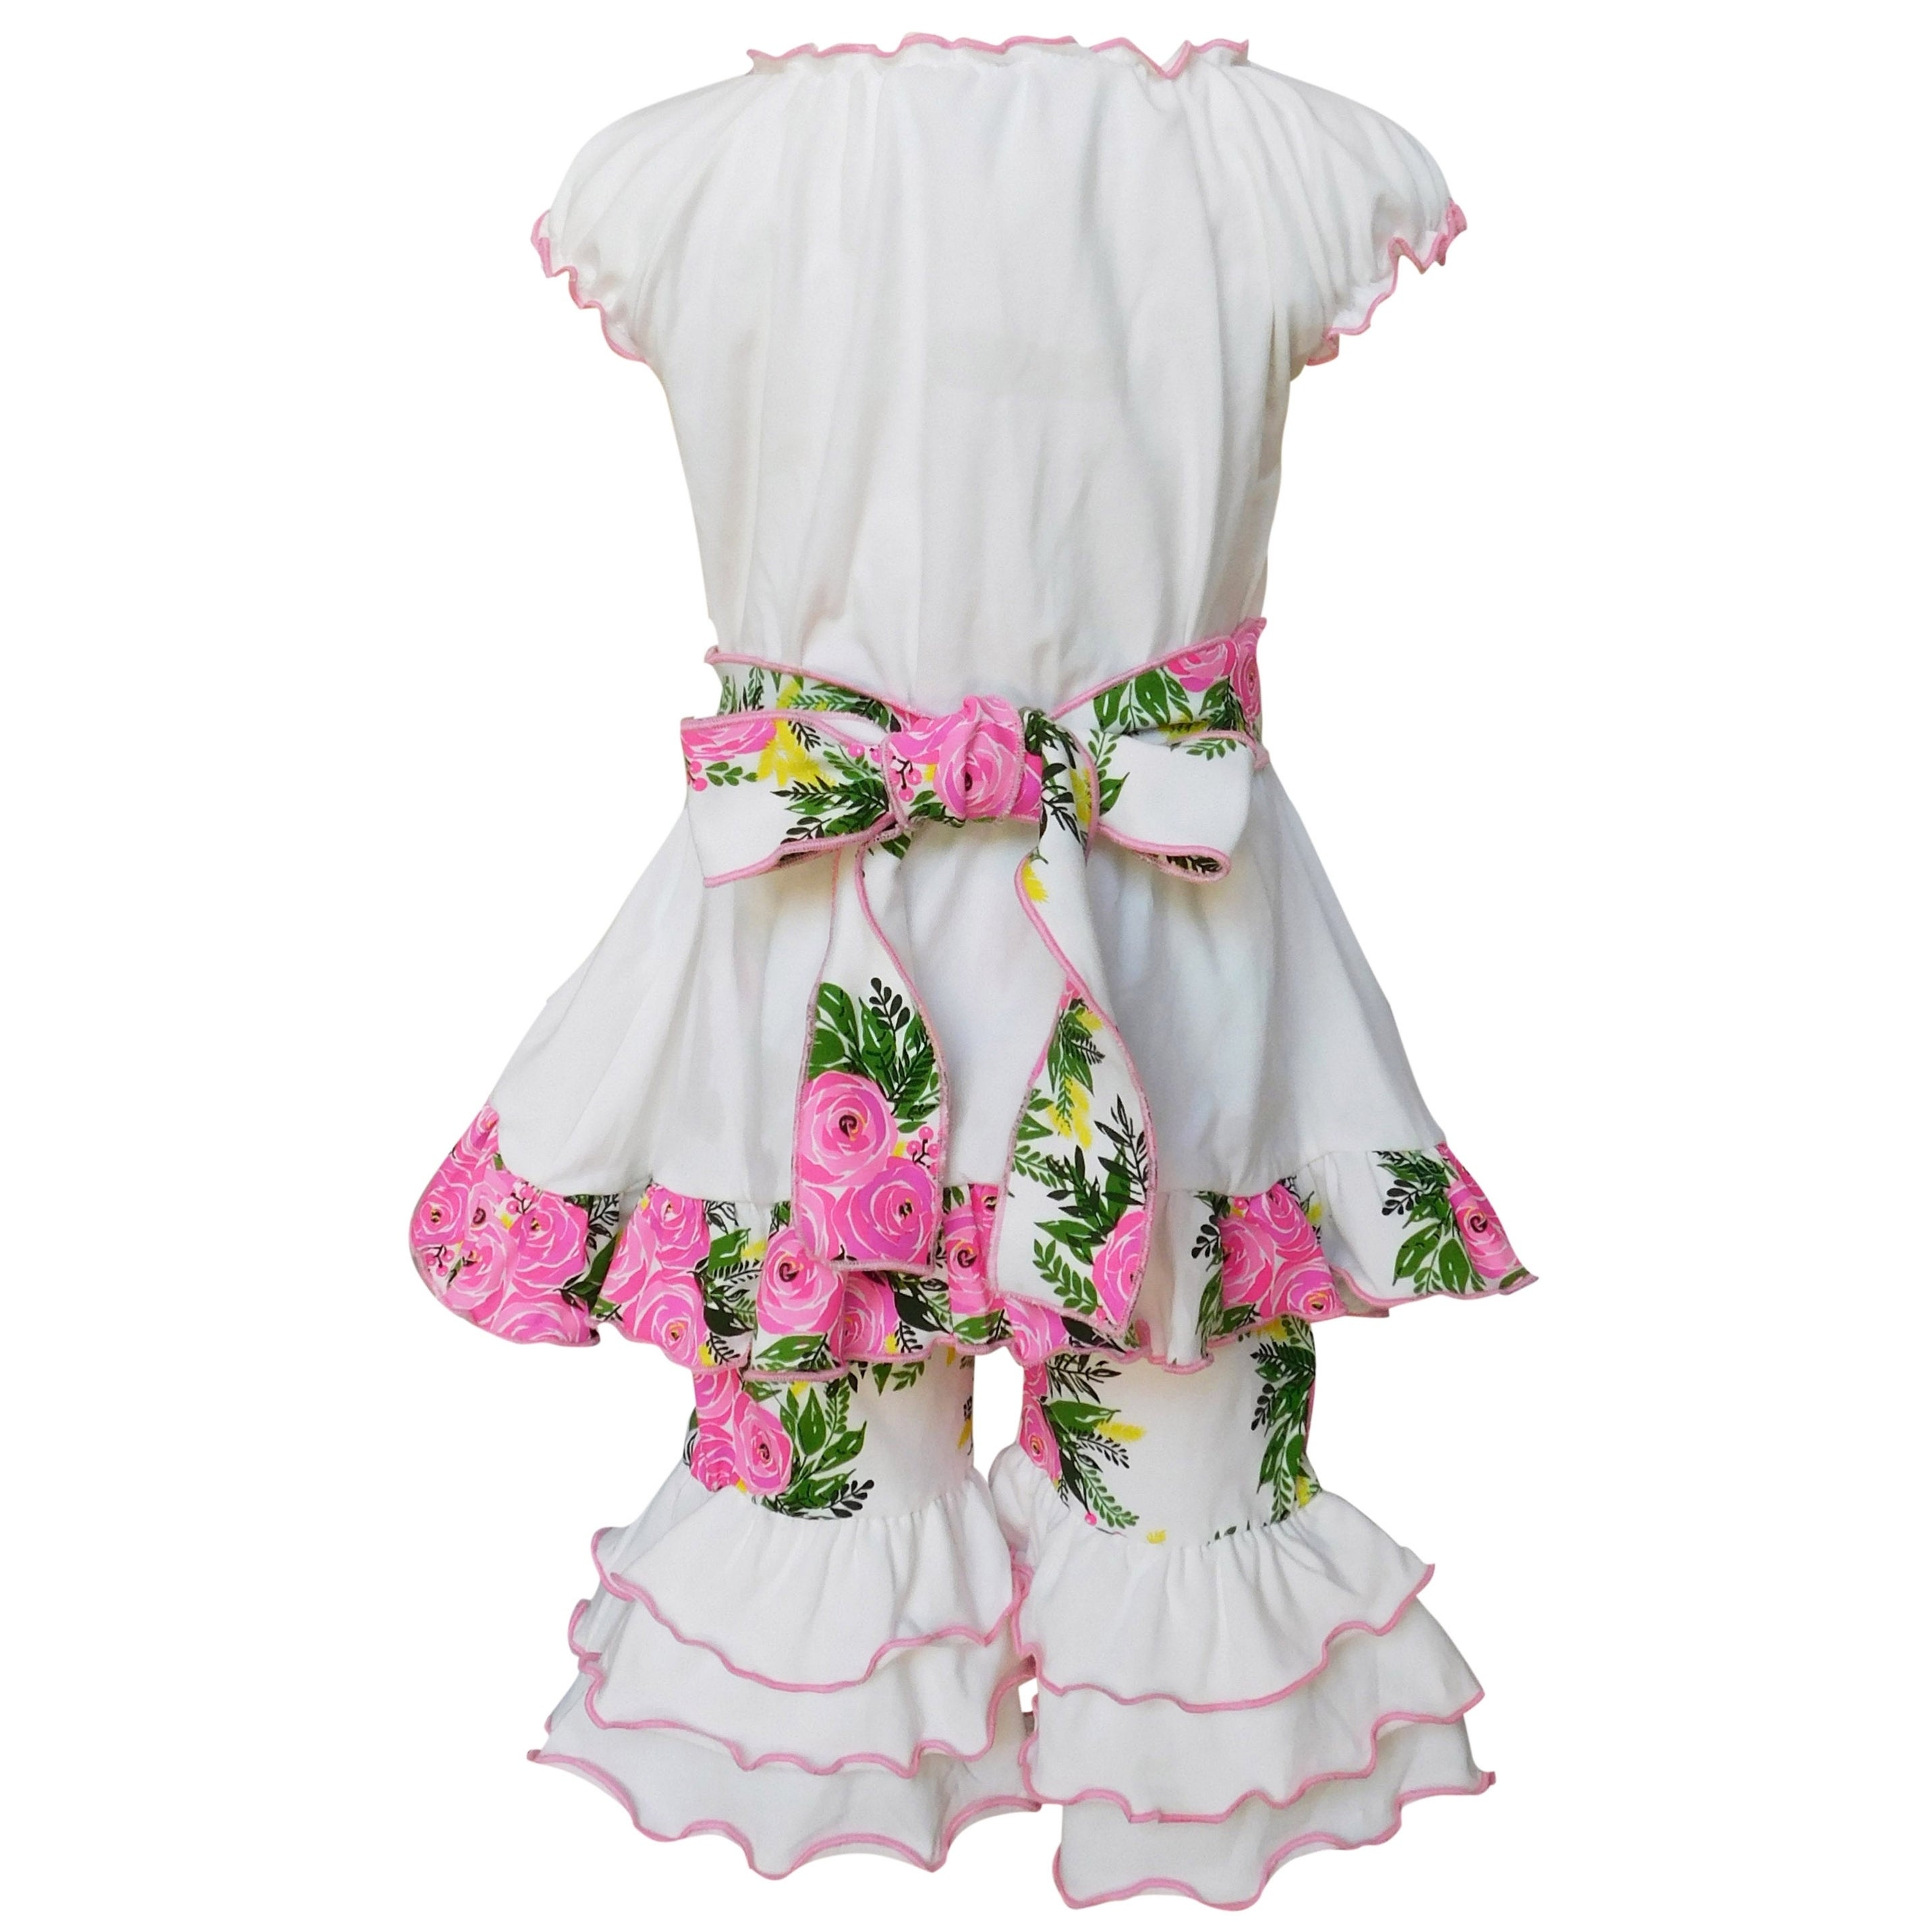 2b343d81d Shop AnnLoren Girls White Shabby Floral Tunic & Capri Outfit - Free  Shipping On Orders Over $45 - Overstock - 26265302